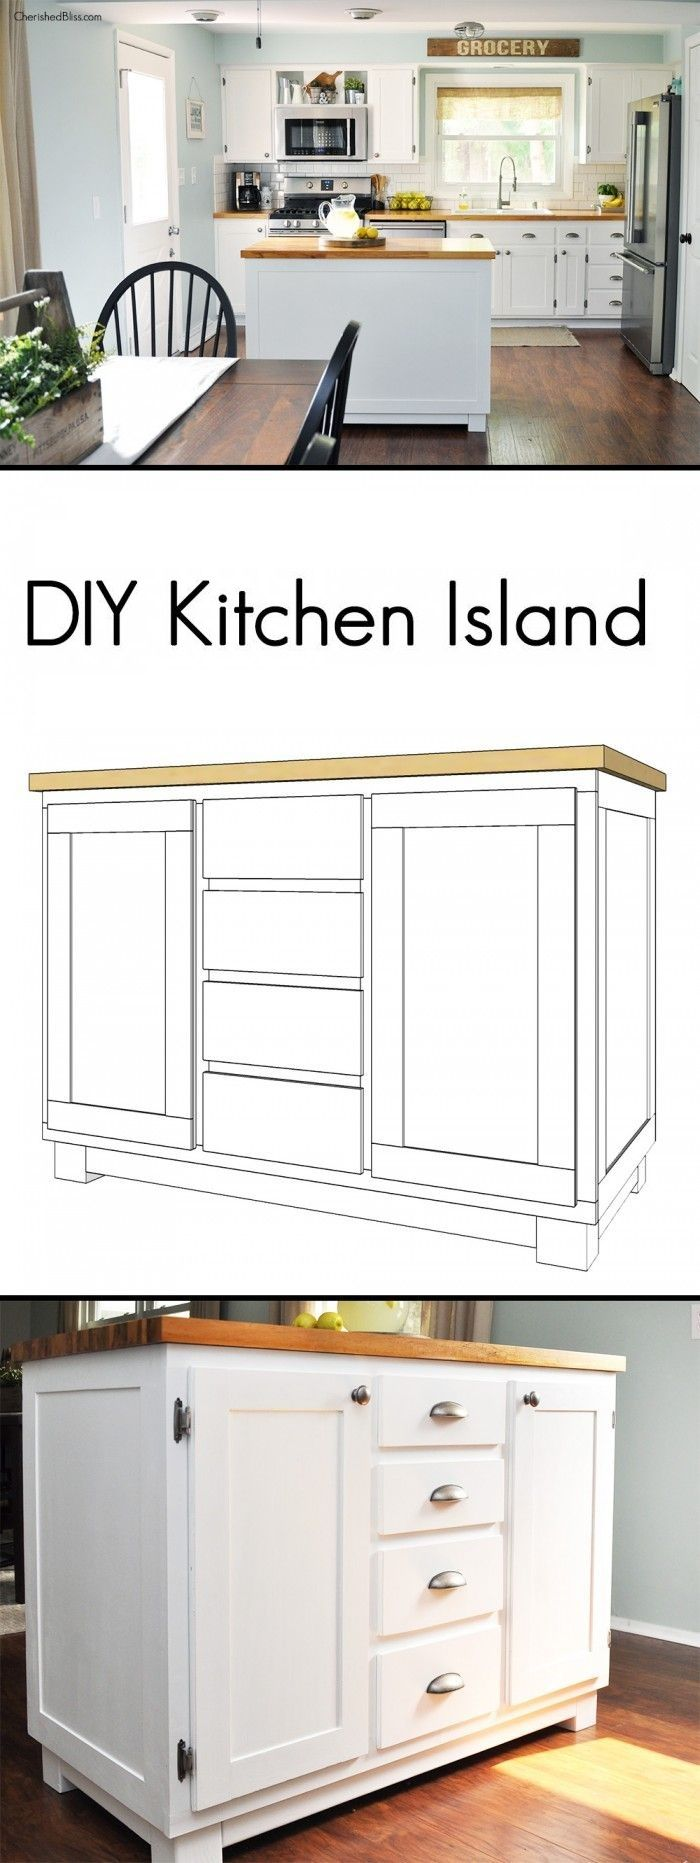 All Round Diy Kitchen Ideas 4